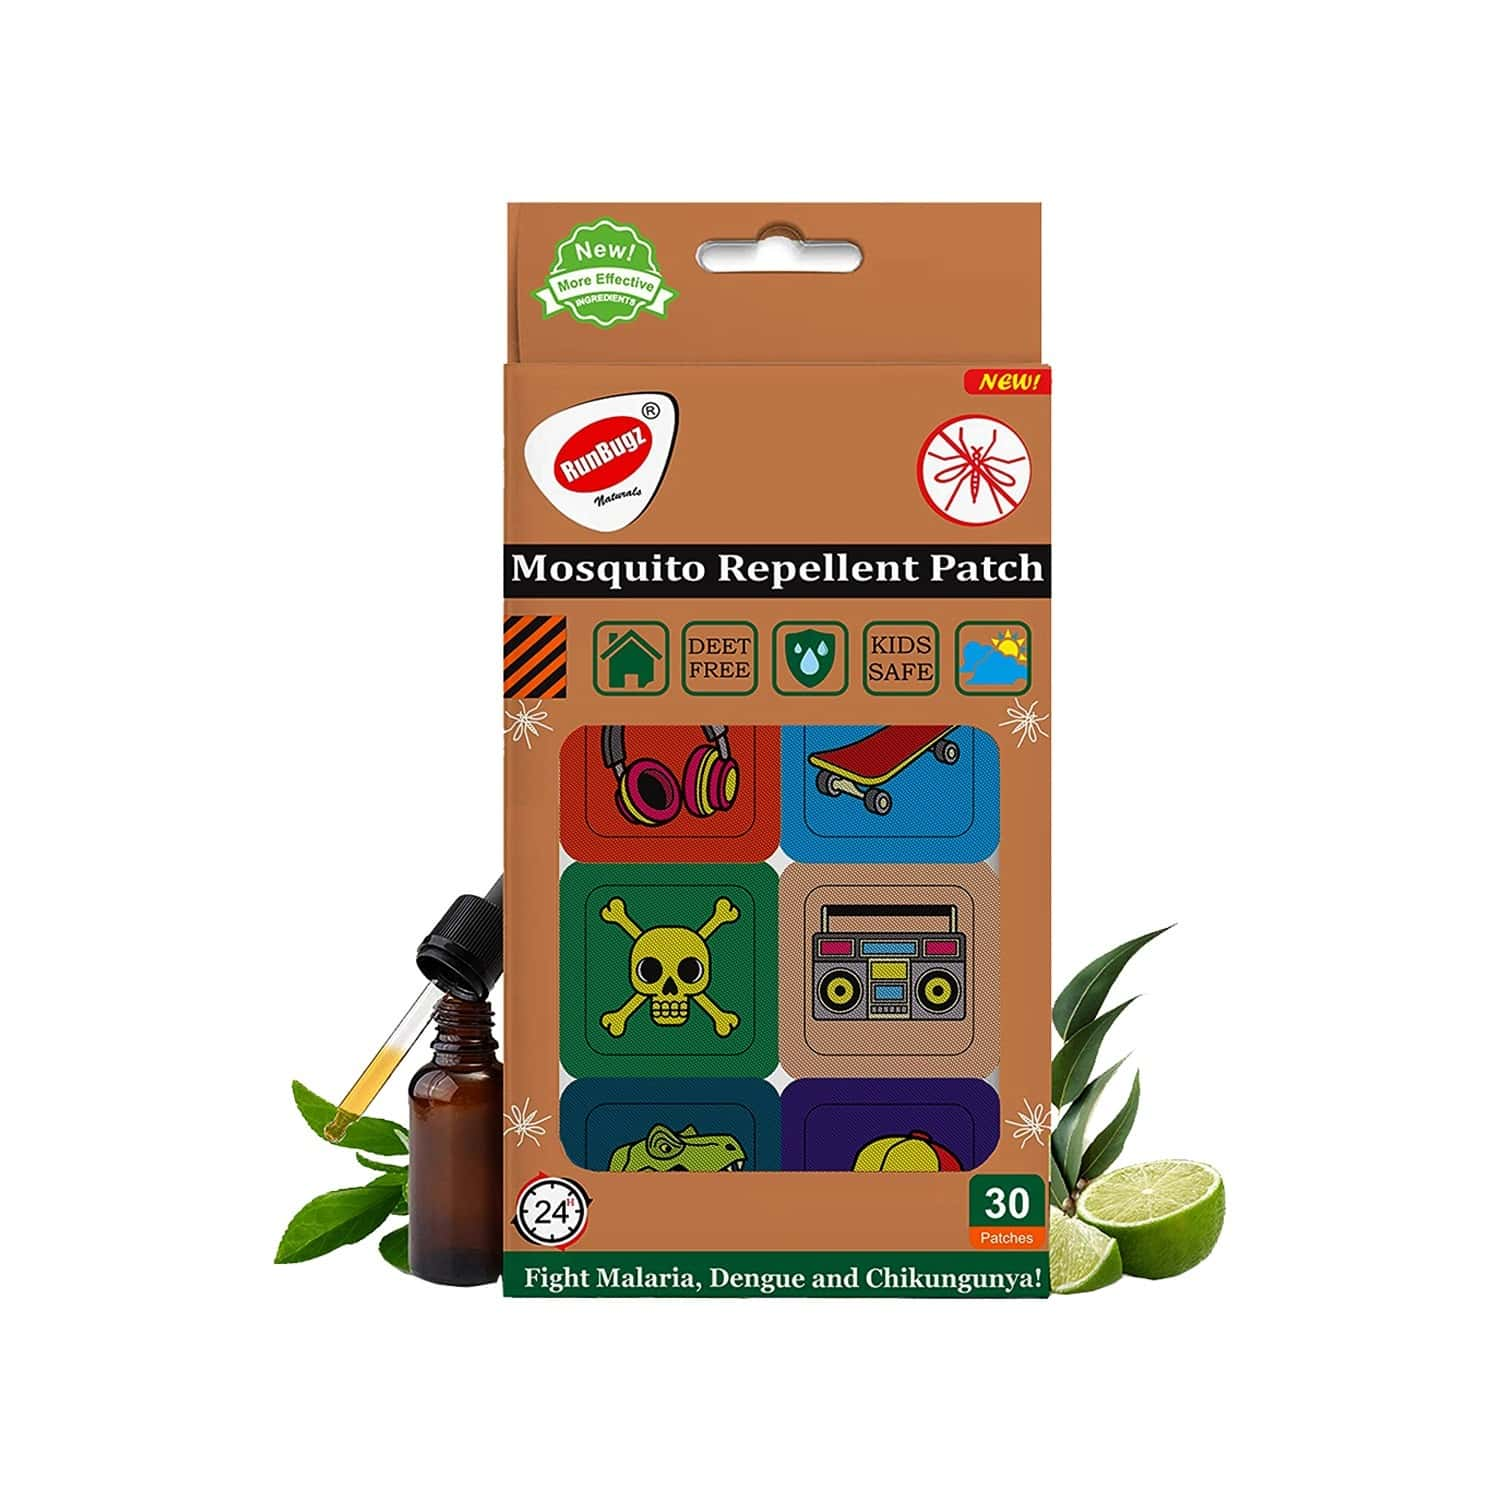 Runbugz Mosquito Repellent Skull Patches For Babies, 30 Patches